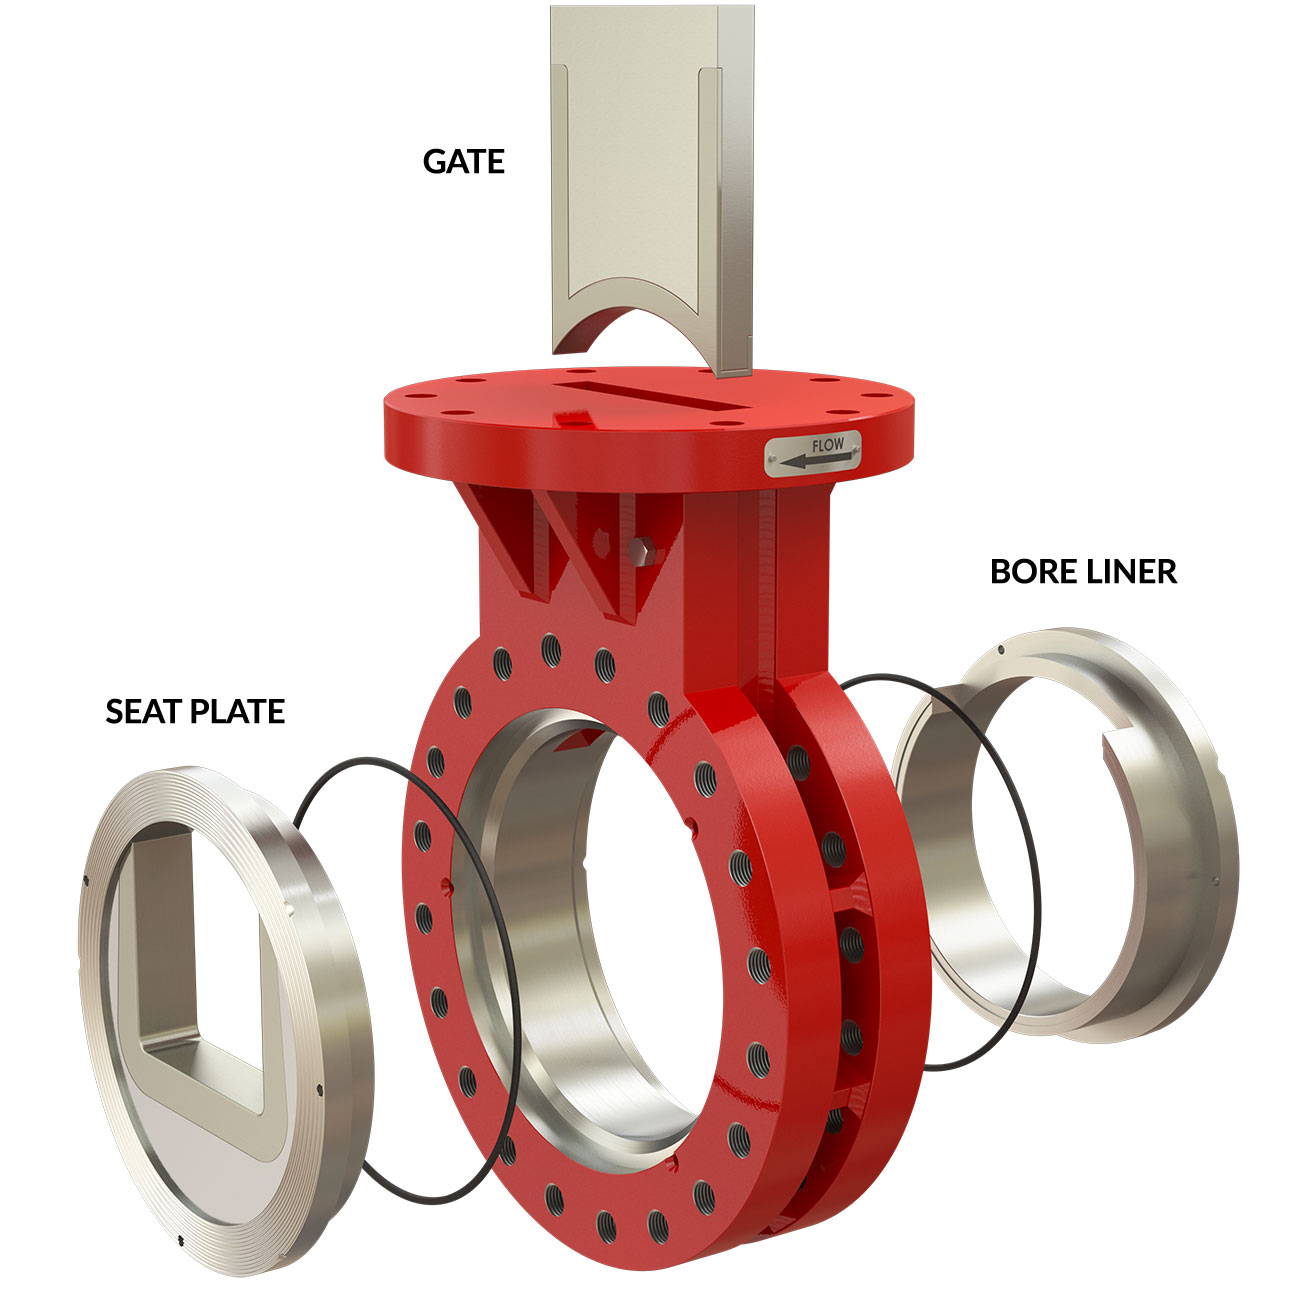 SlurryFlo valves have a modular design that allows for trim components to be replaced